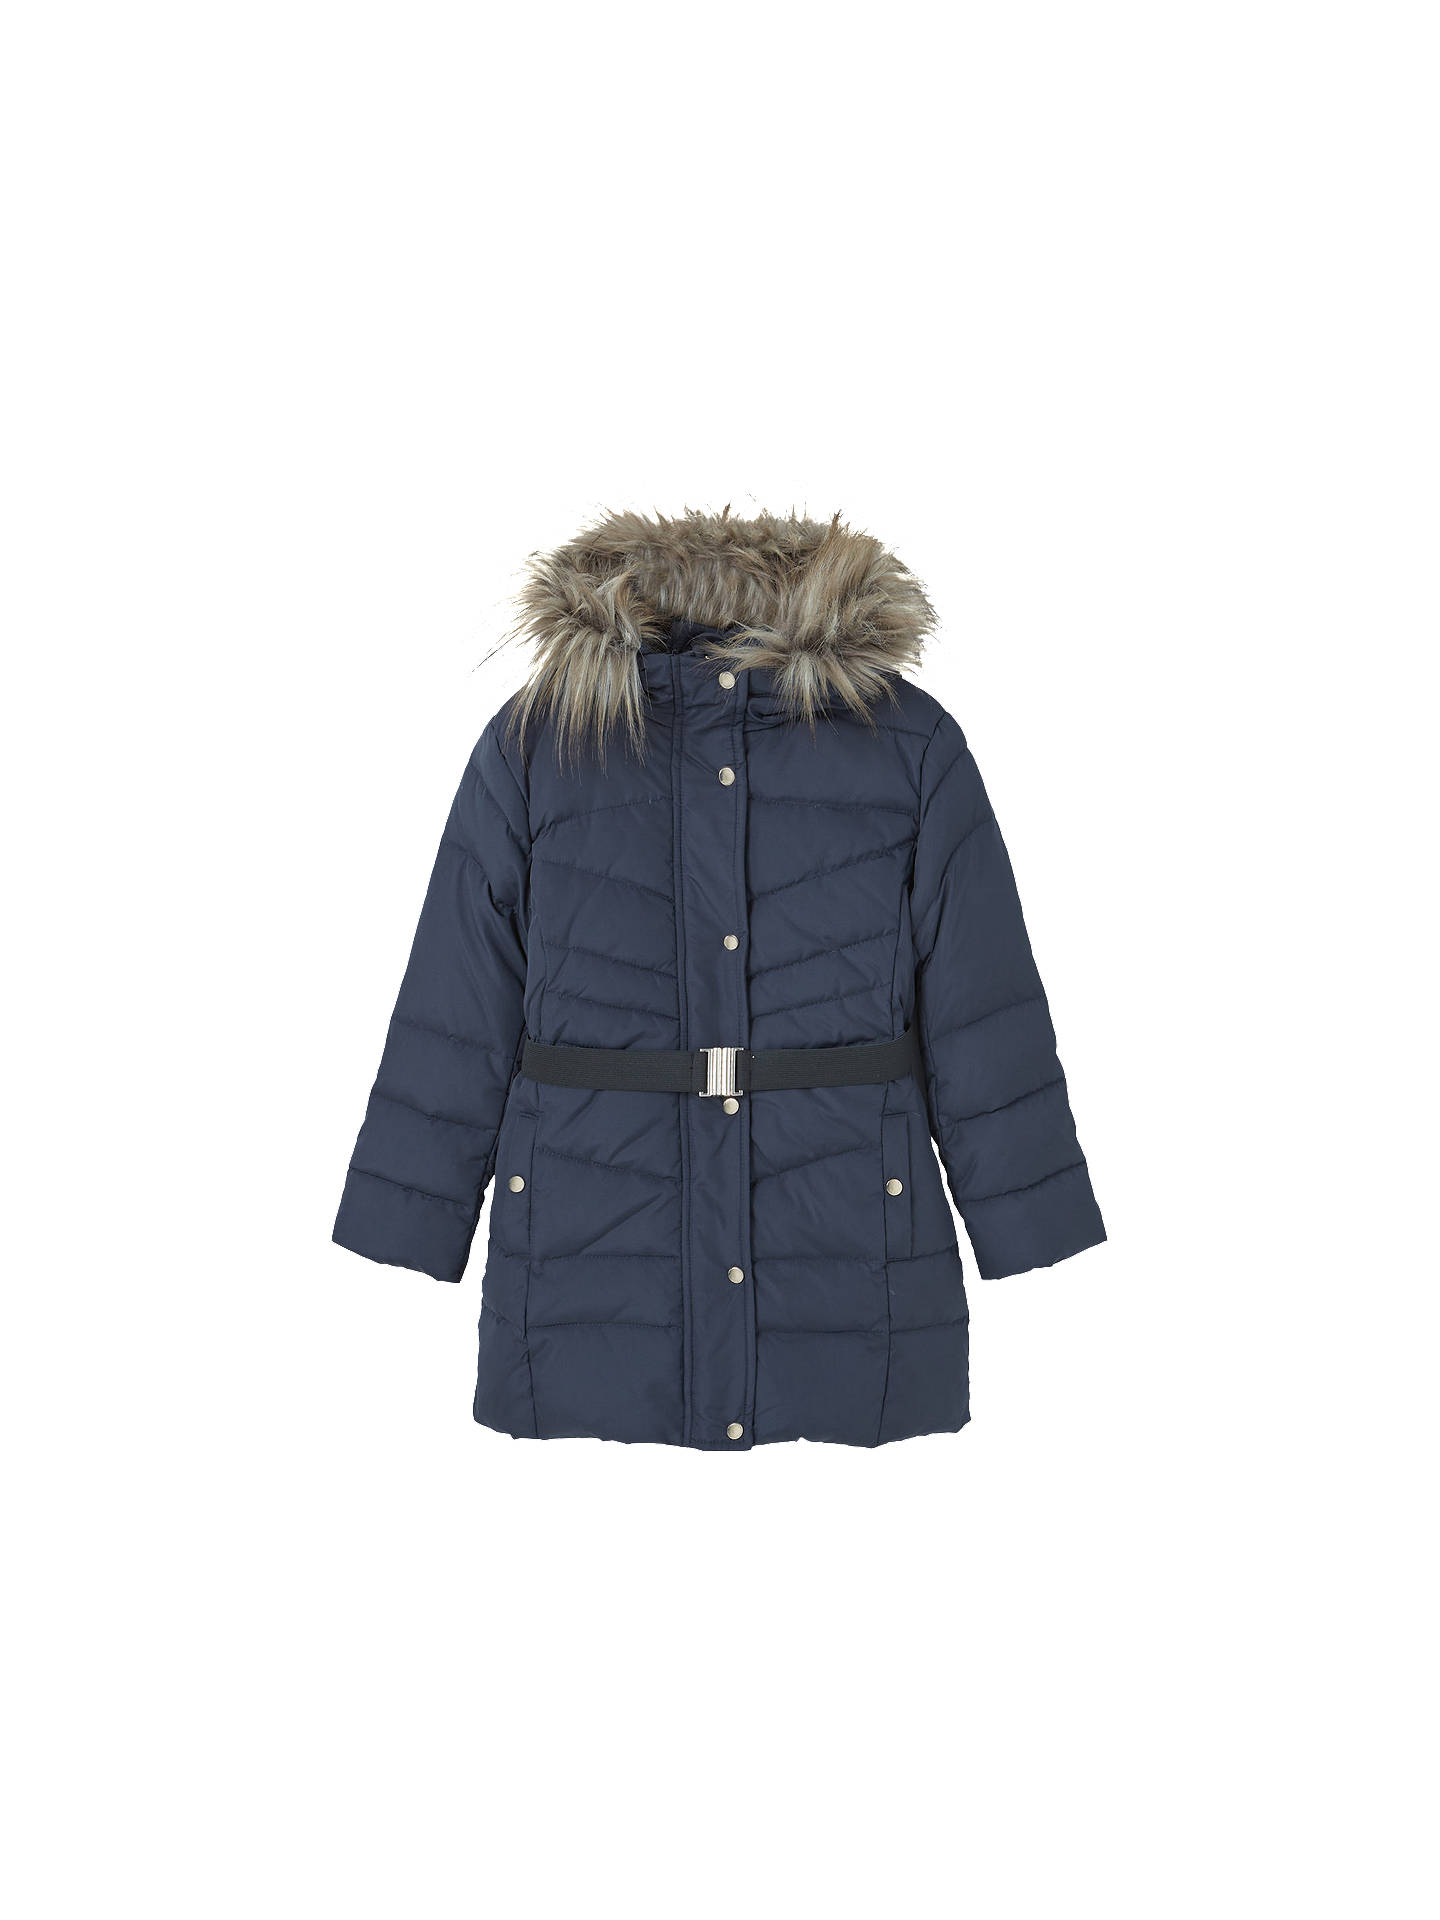 f8530d422c4 Buy Mango Kids Girls' Water Resistant Feather and Down Coat, Navy, 3 years  ...